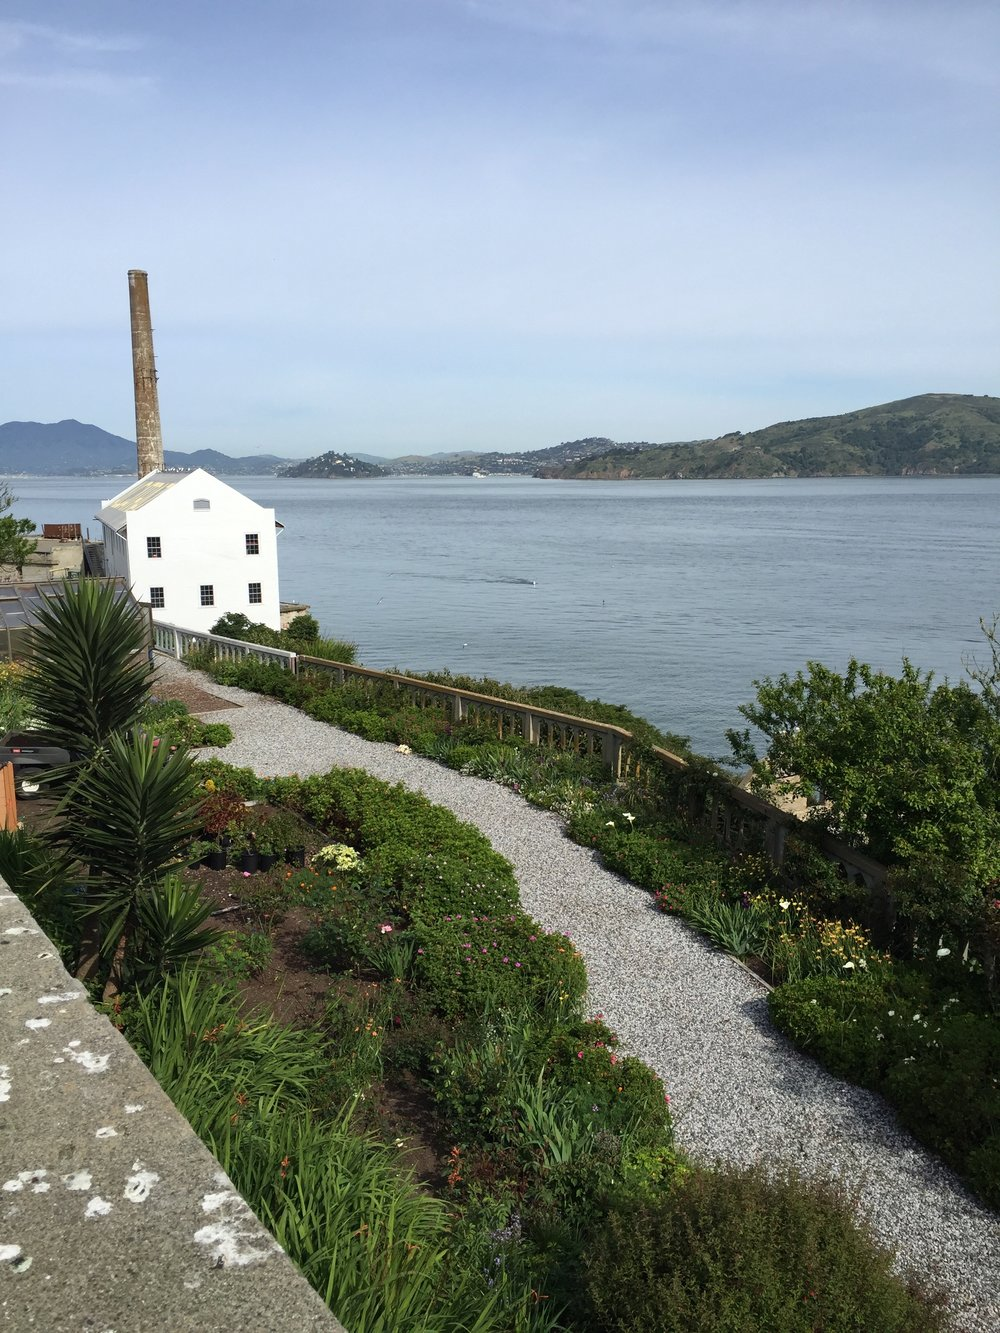 One of the 'official' gardens on Alcatraz, on the site of the old hospital. There are some historic roses planted here. as well as many native and exotic perennials and bulbs. Angel Island is in the background, on the right.